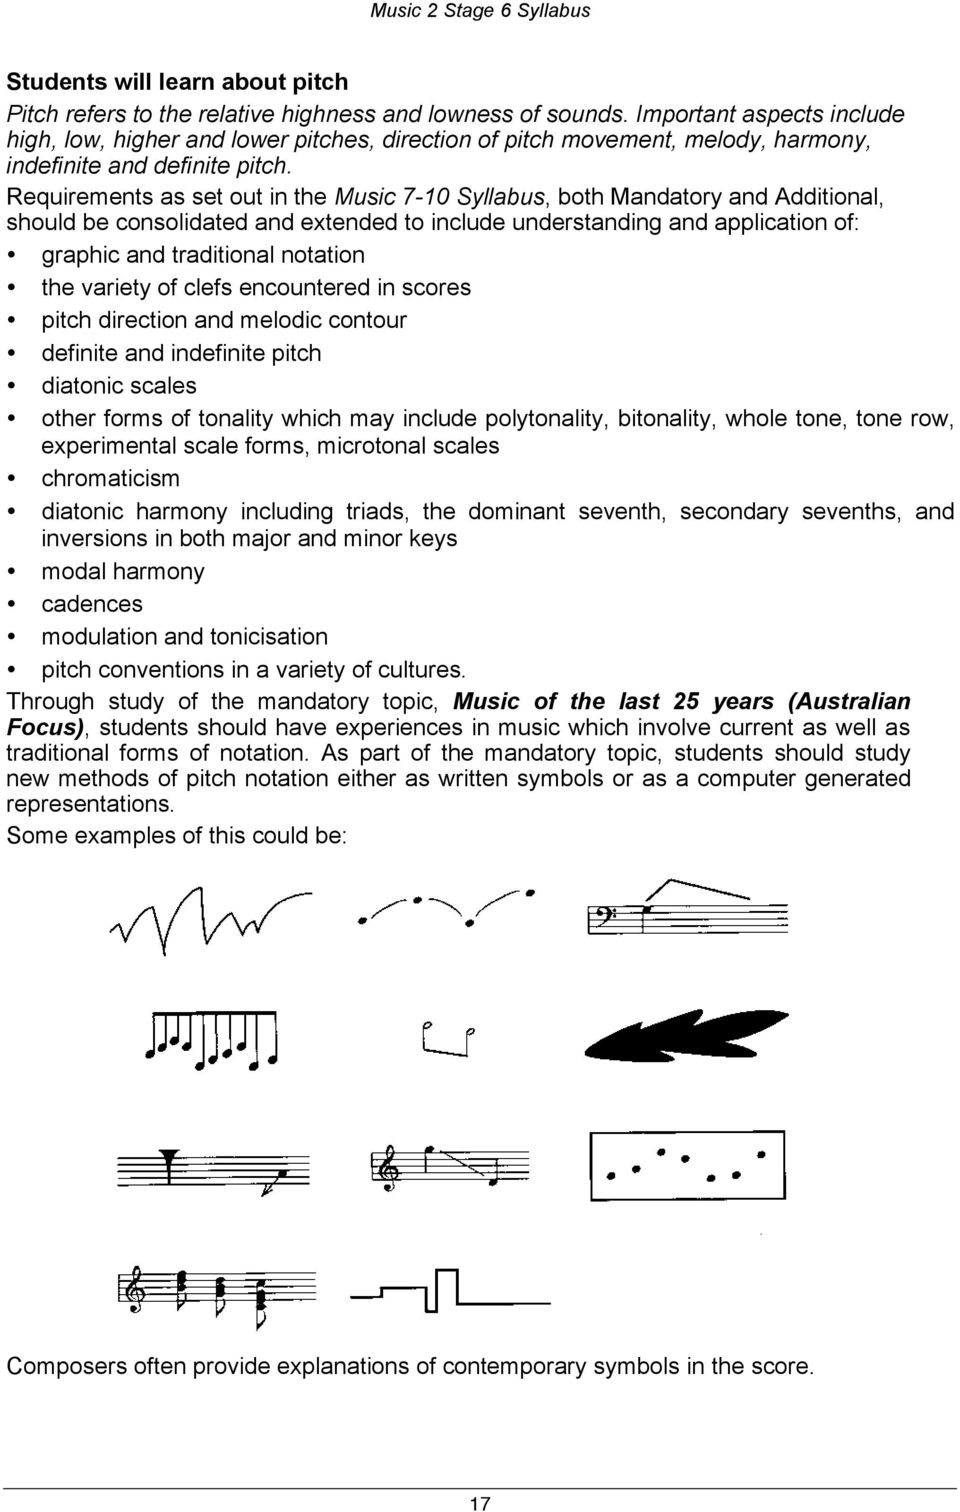 Requirements as set out in the Music 7-10 Syllabus, both Mandatory and Additional, should be consolidated and extended to include understanding and application of: graphic and traditional notation